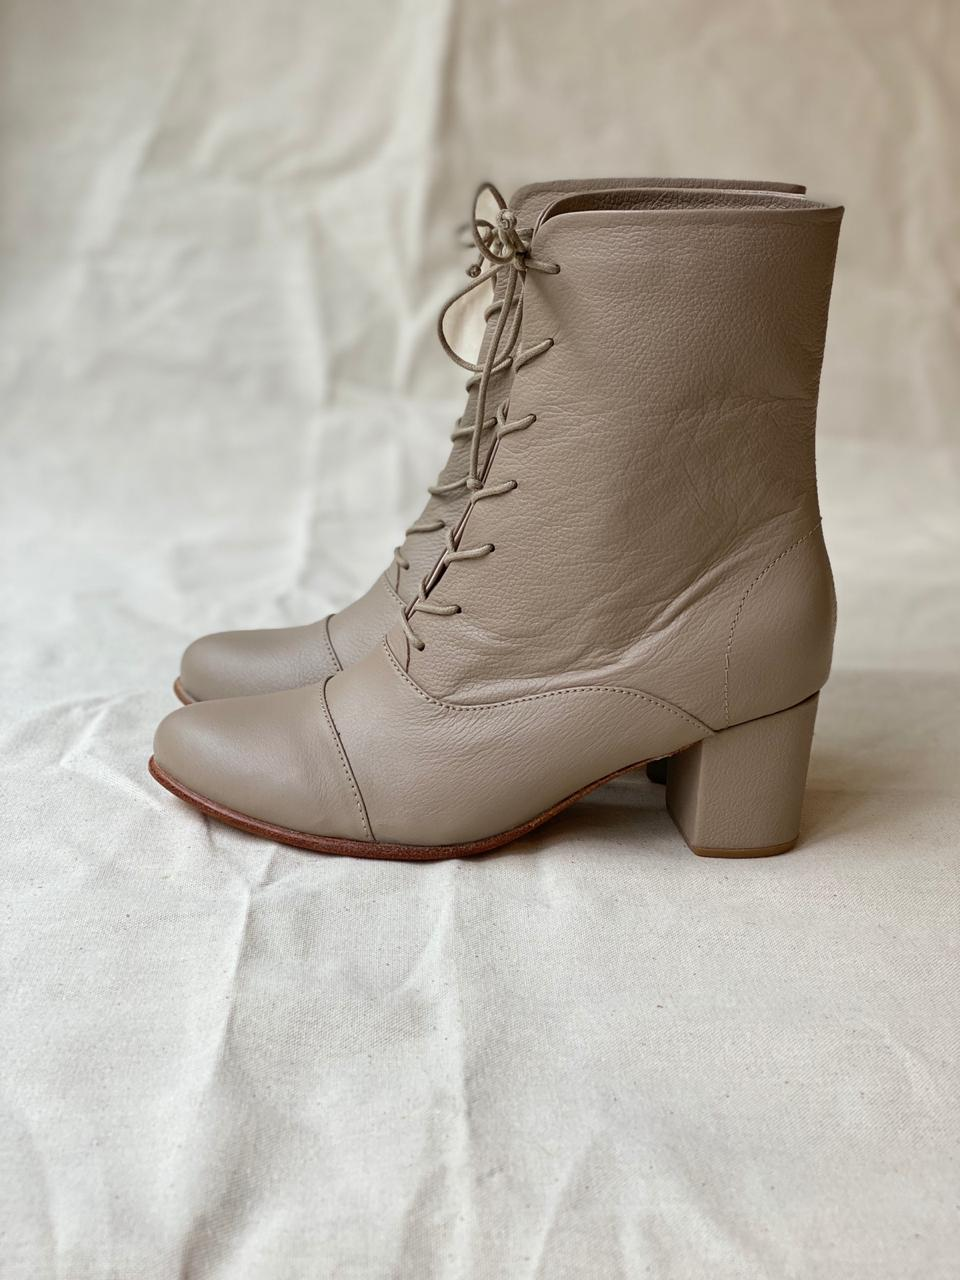 Modest Boot Nude Talla 37